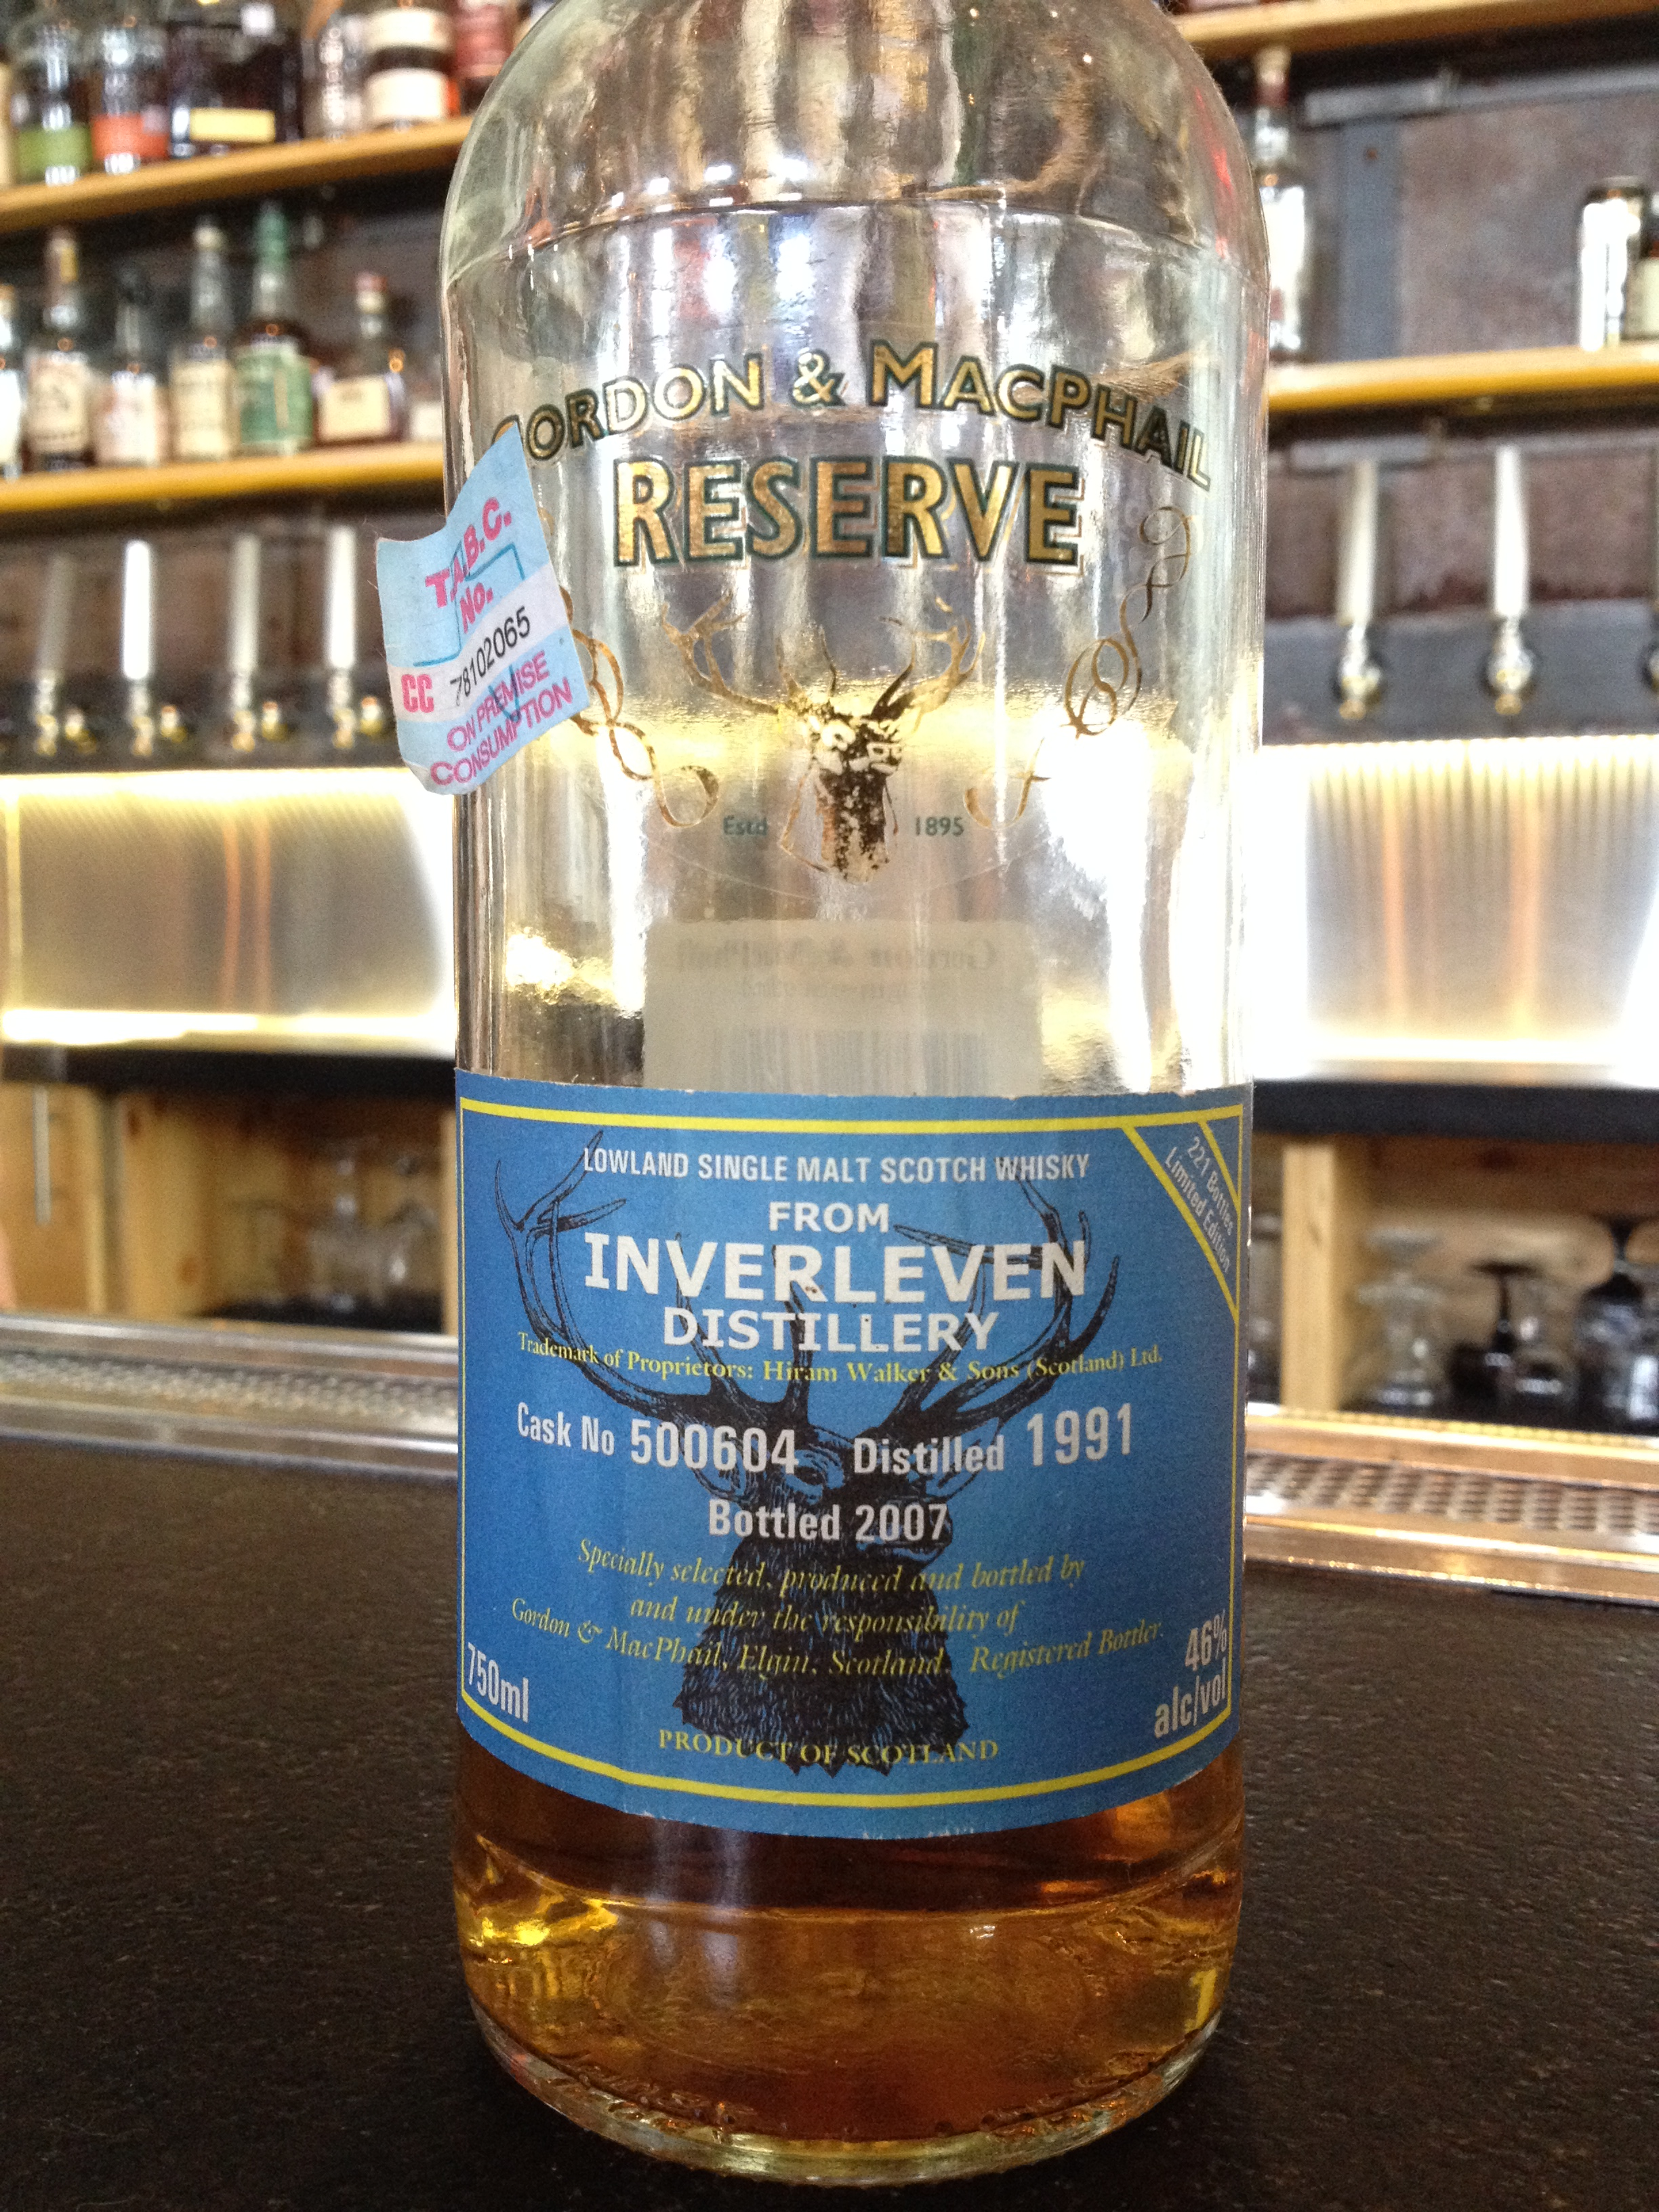 16 Year Old | 46% ABV - Distillery | Inverleven